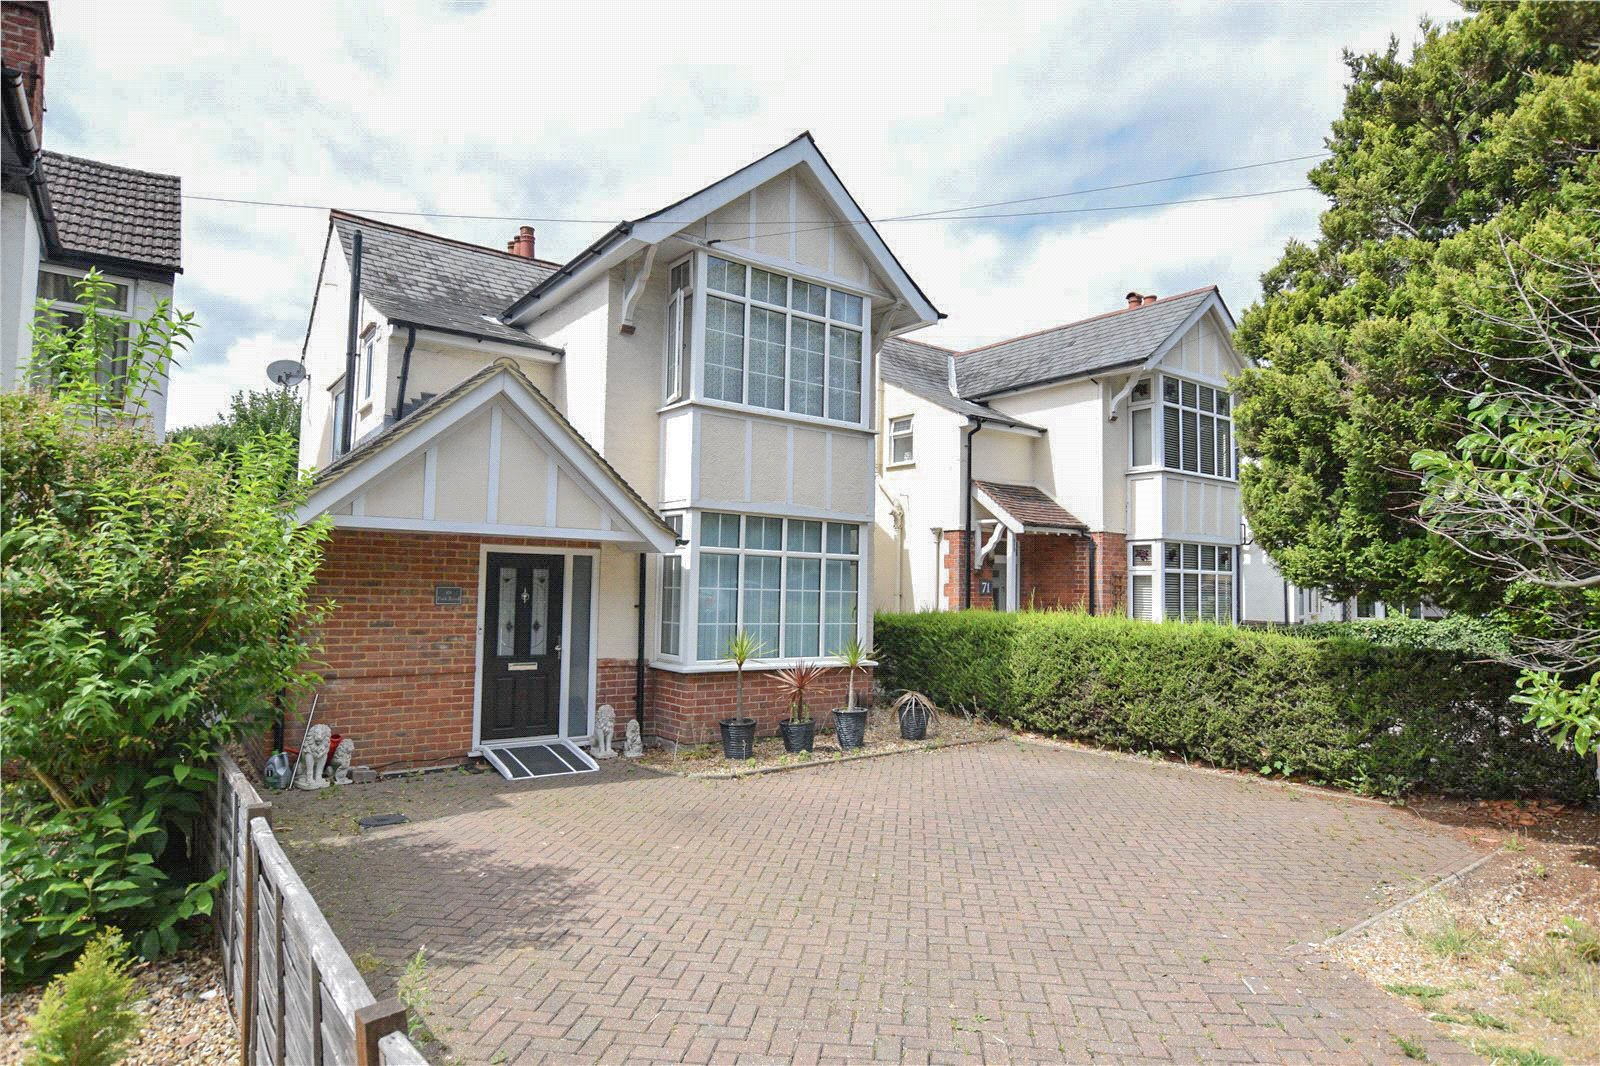 3 Bedrooms Detached House for sale in Park Road, Camberley, Surrey, GU15